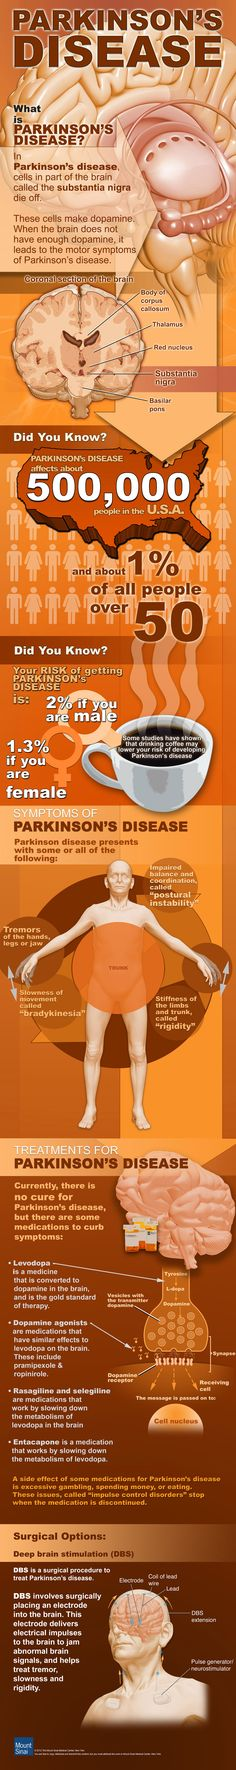 #Parkinson's Disease #Infographic